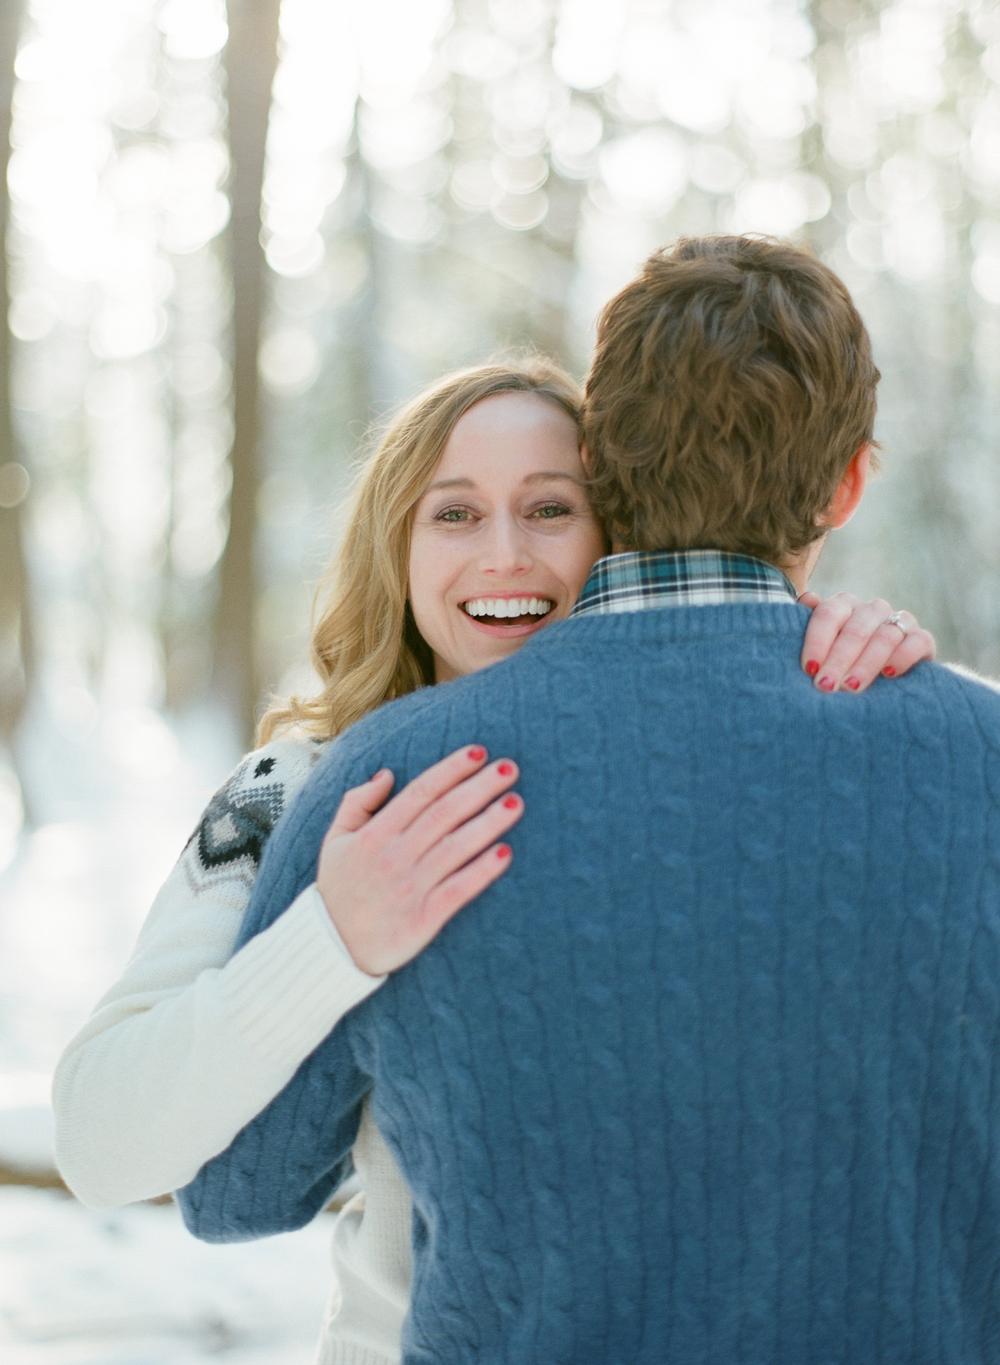 winter-engagement-photos-wausau-006